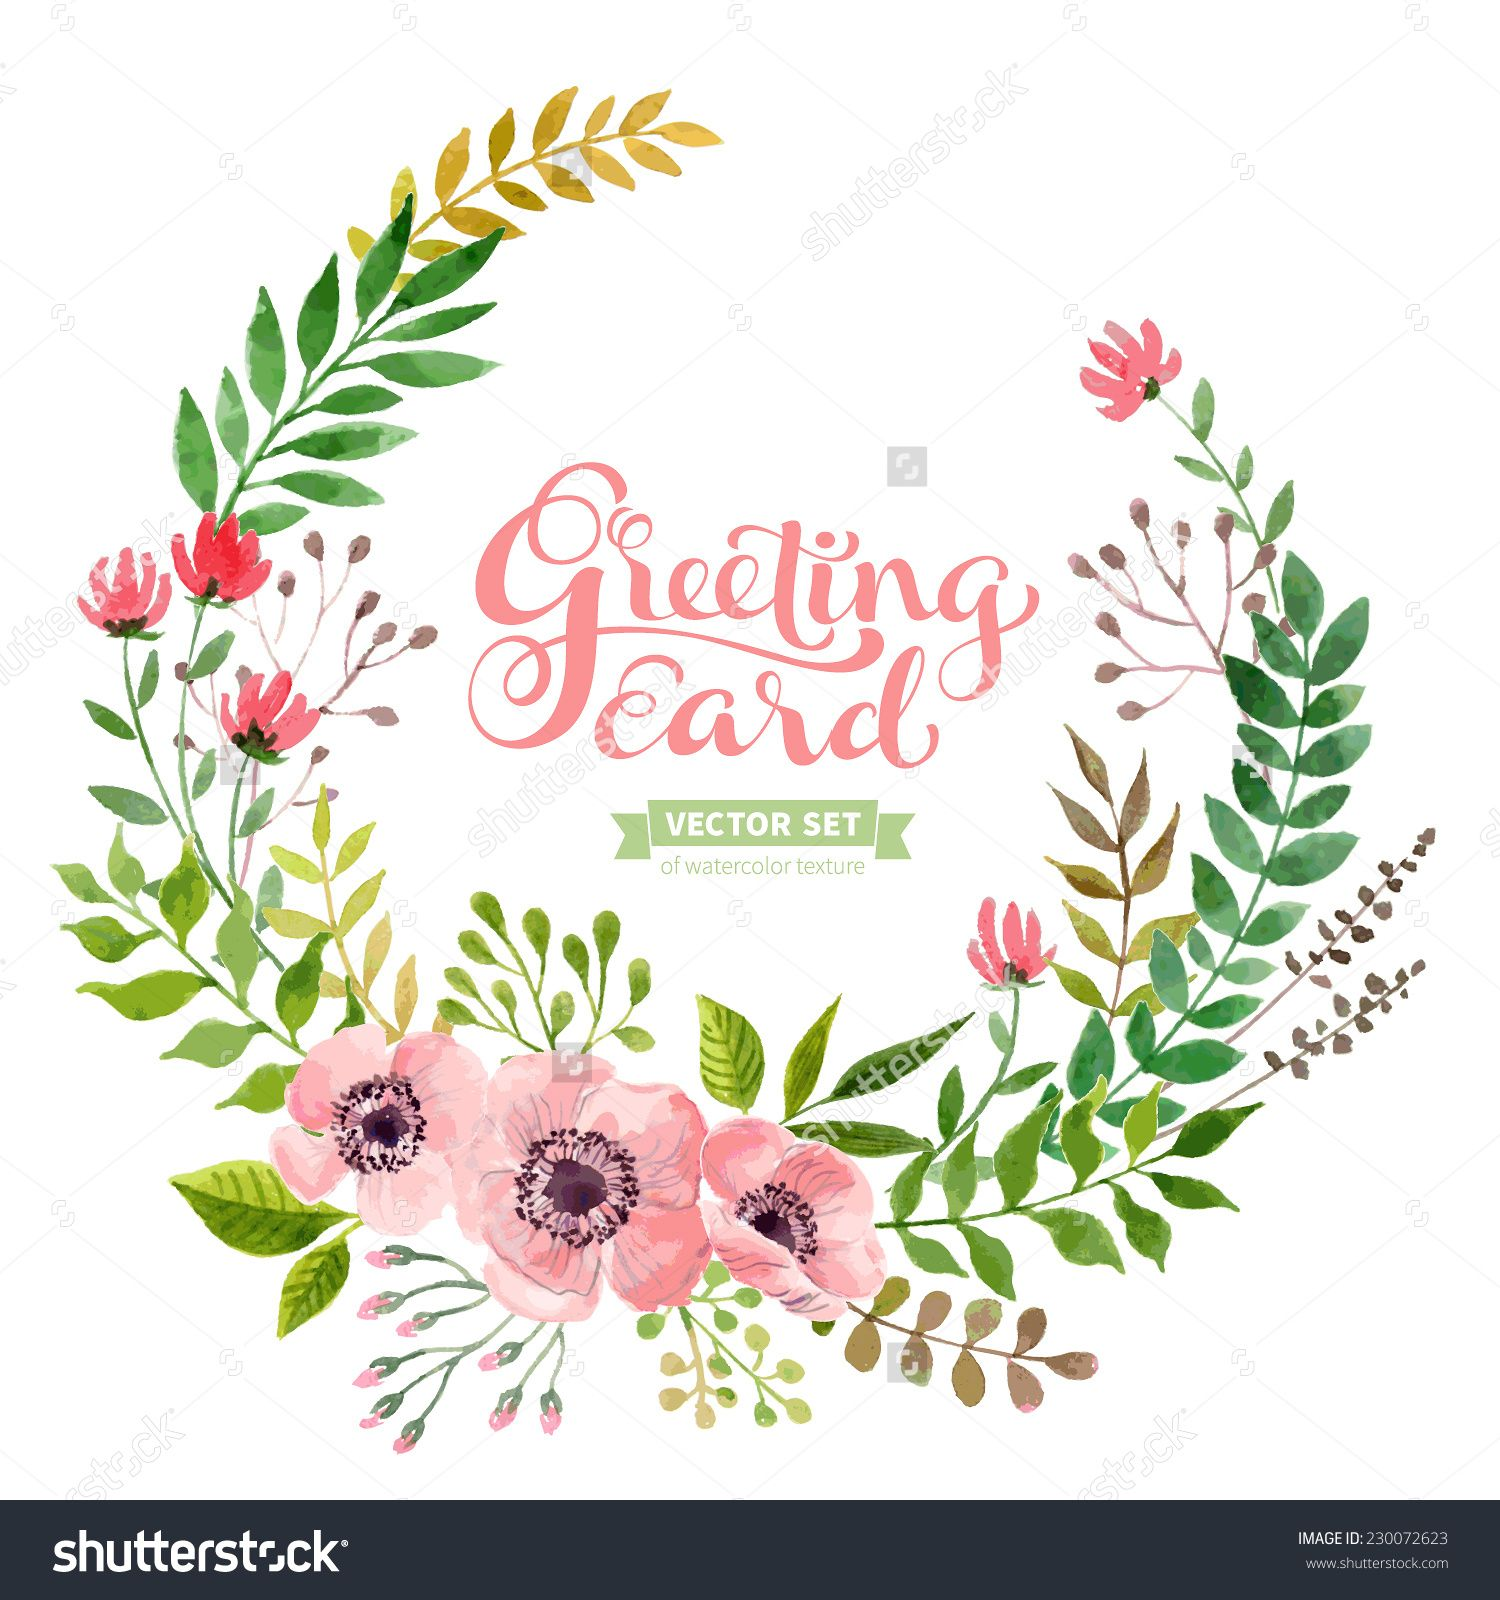 vector flowers set colorful floral collection with leaves